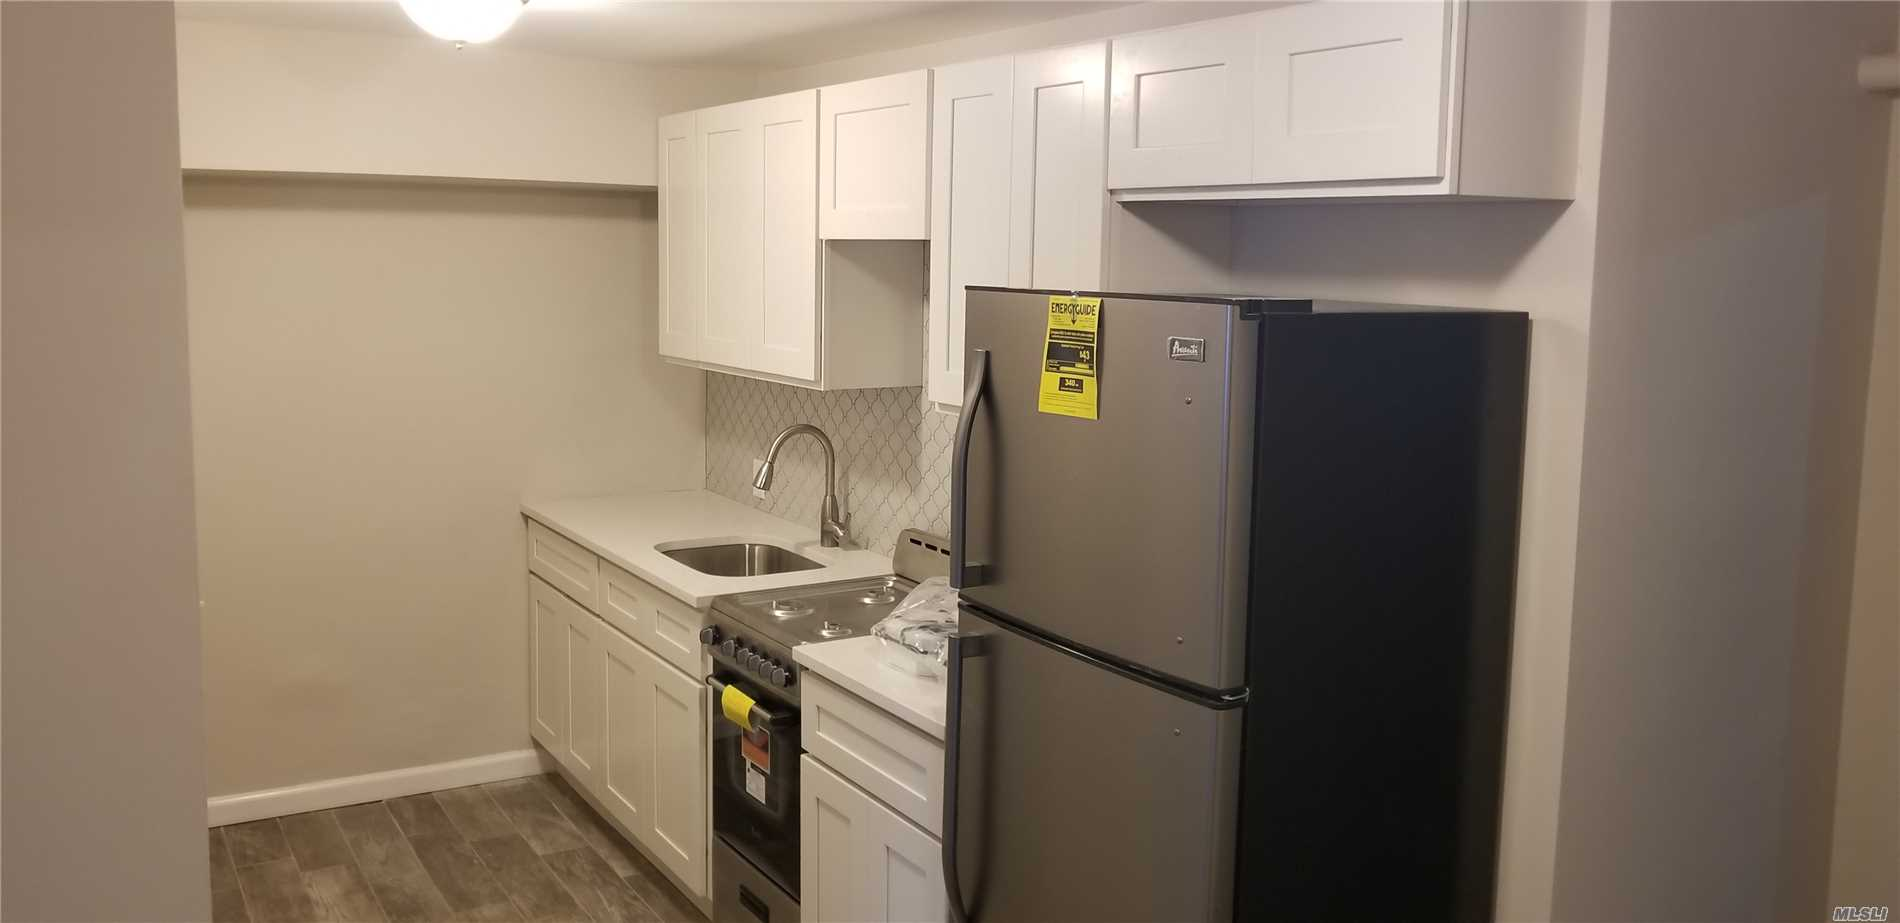 Bright & Fully Renovated with New Kitchen, Quartz Counters and Stainless Steel Appliances. New Bath, Hardwoods In Bedroom. New Tile Floors, Doors & Painted. Patio & Garden Off Living Room. Close to Queens Blvd, Minutes To Subway M/R Train, Q58/Q59/Q60, Grand Ave & Elmhurst Hospital.